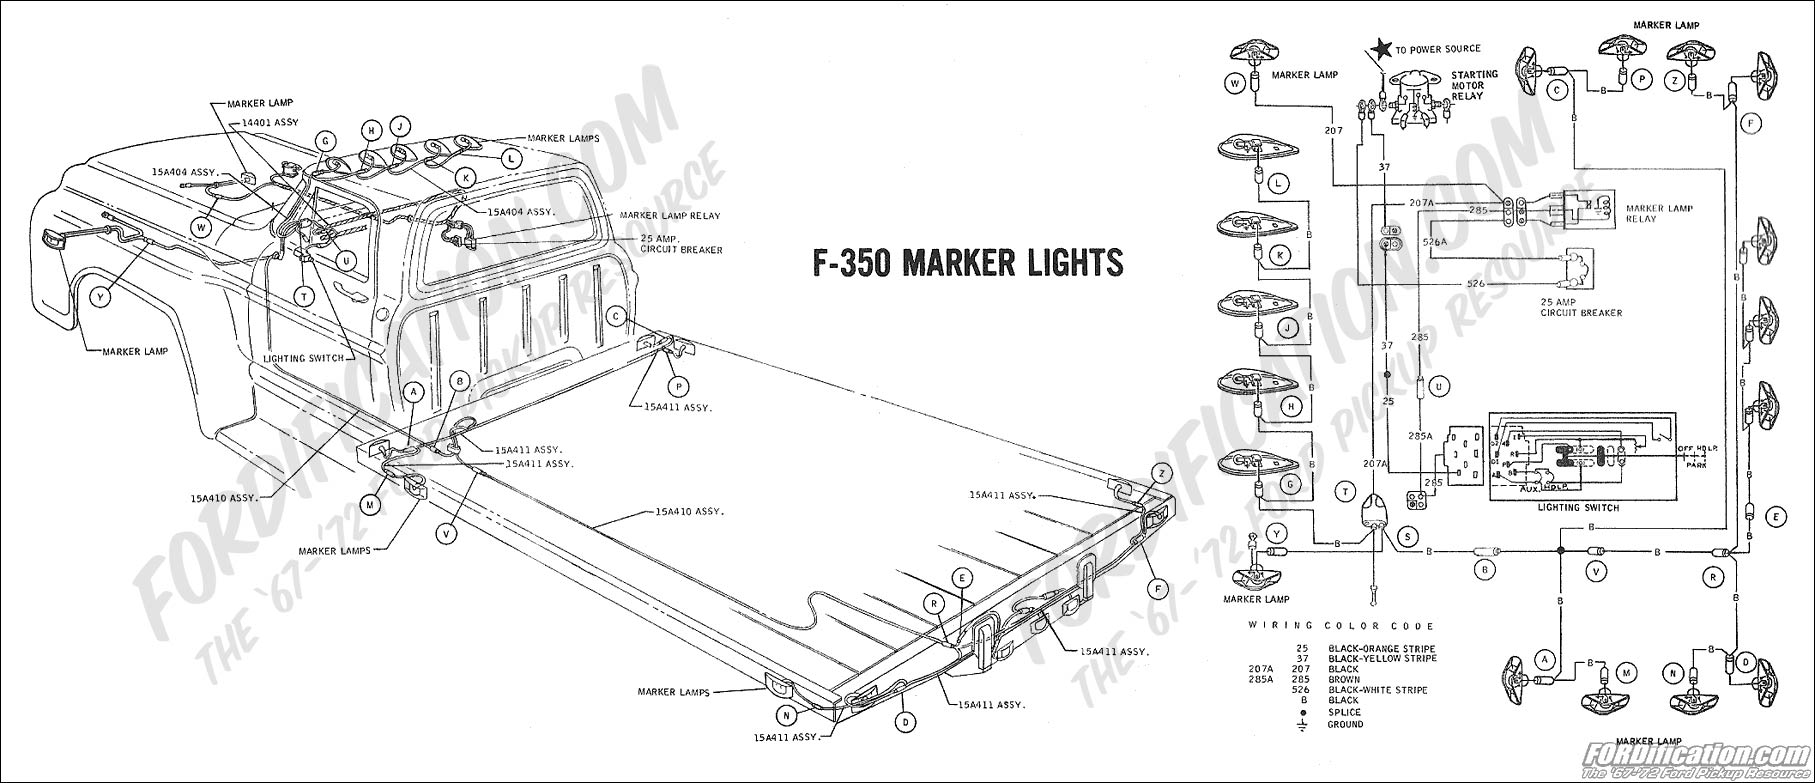 1969 Ford F 350 Wiring Diagram Lamp Diy Enthusiasts Diagrams F100 Harness Truck Technical Drawings And Schematics Section H Rh Fordification Com 1996